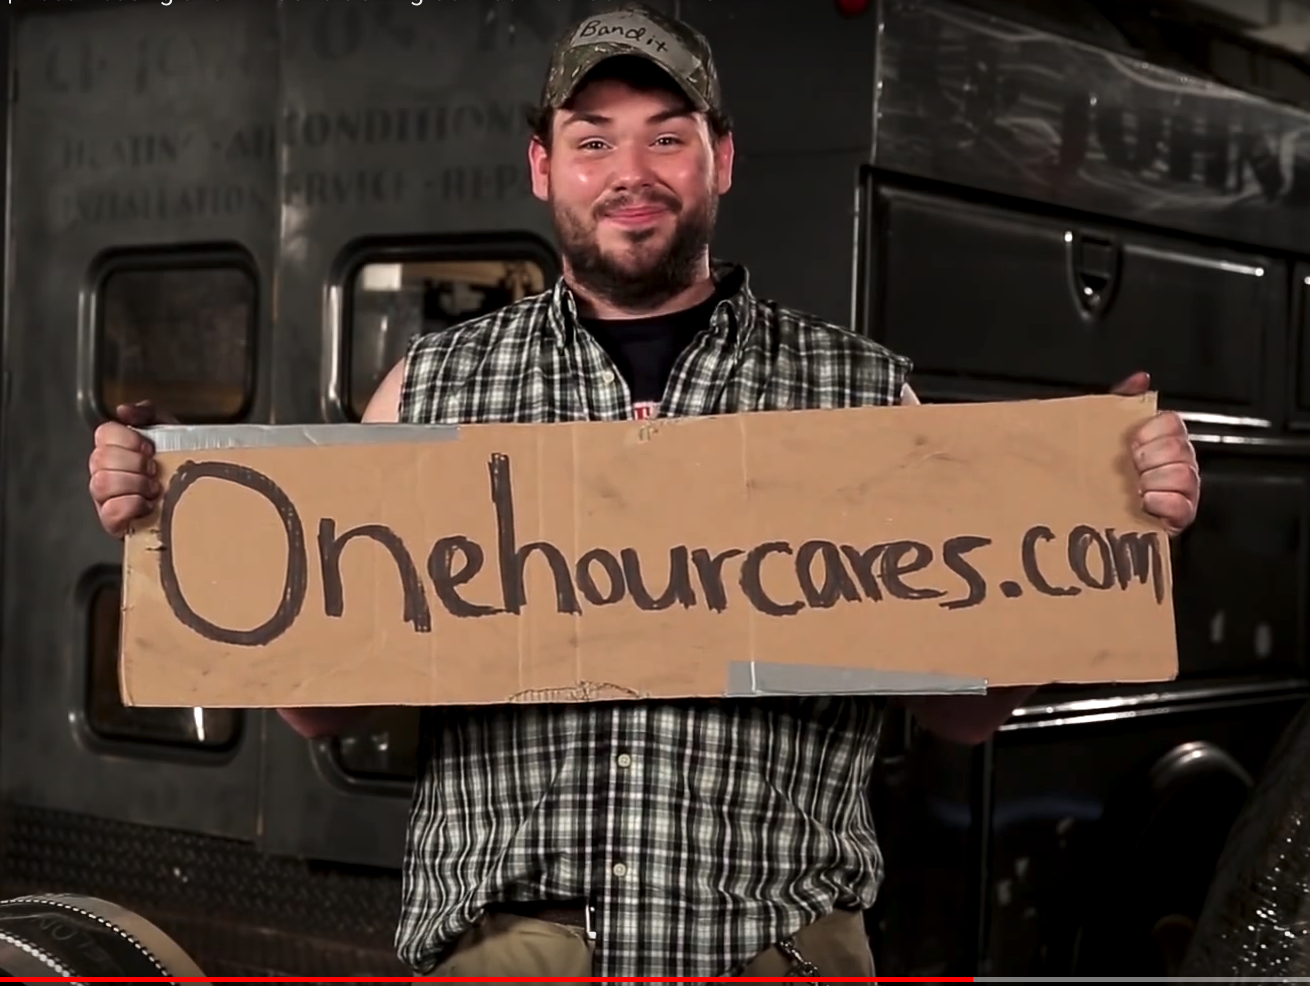 Introducing One Hour Cares